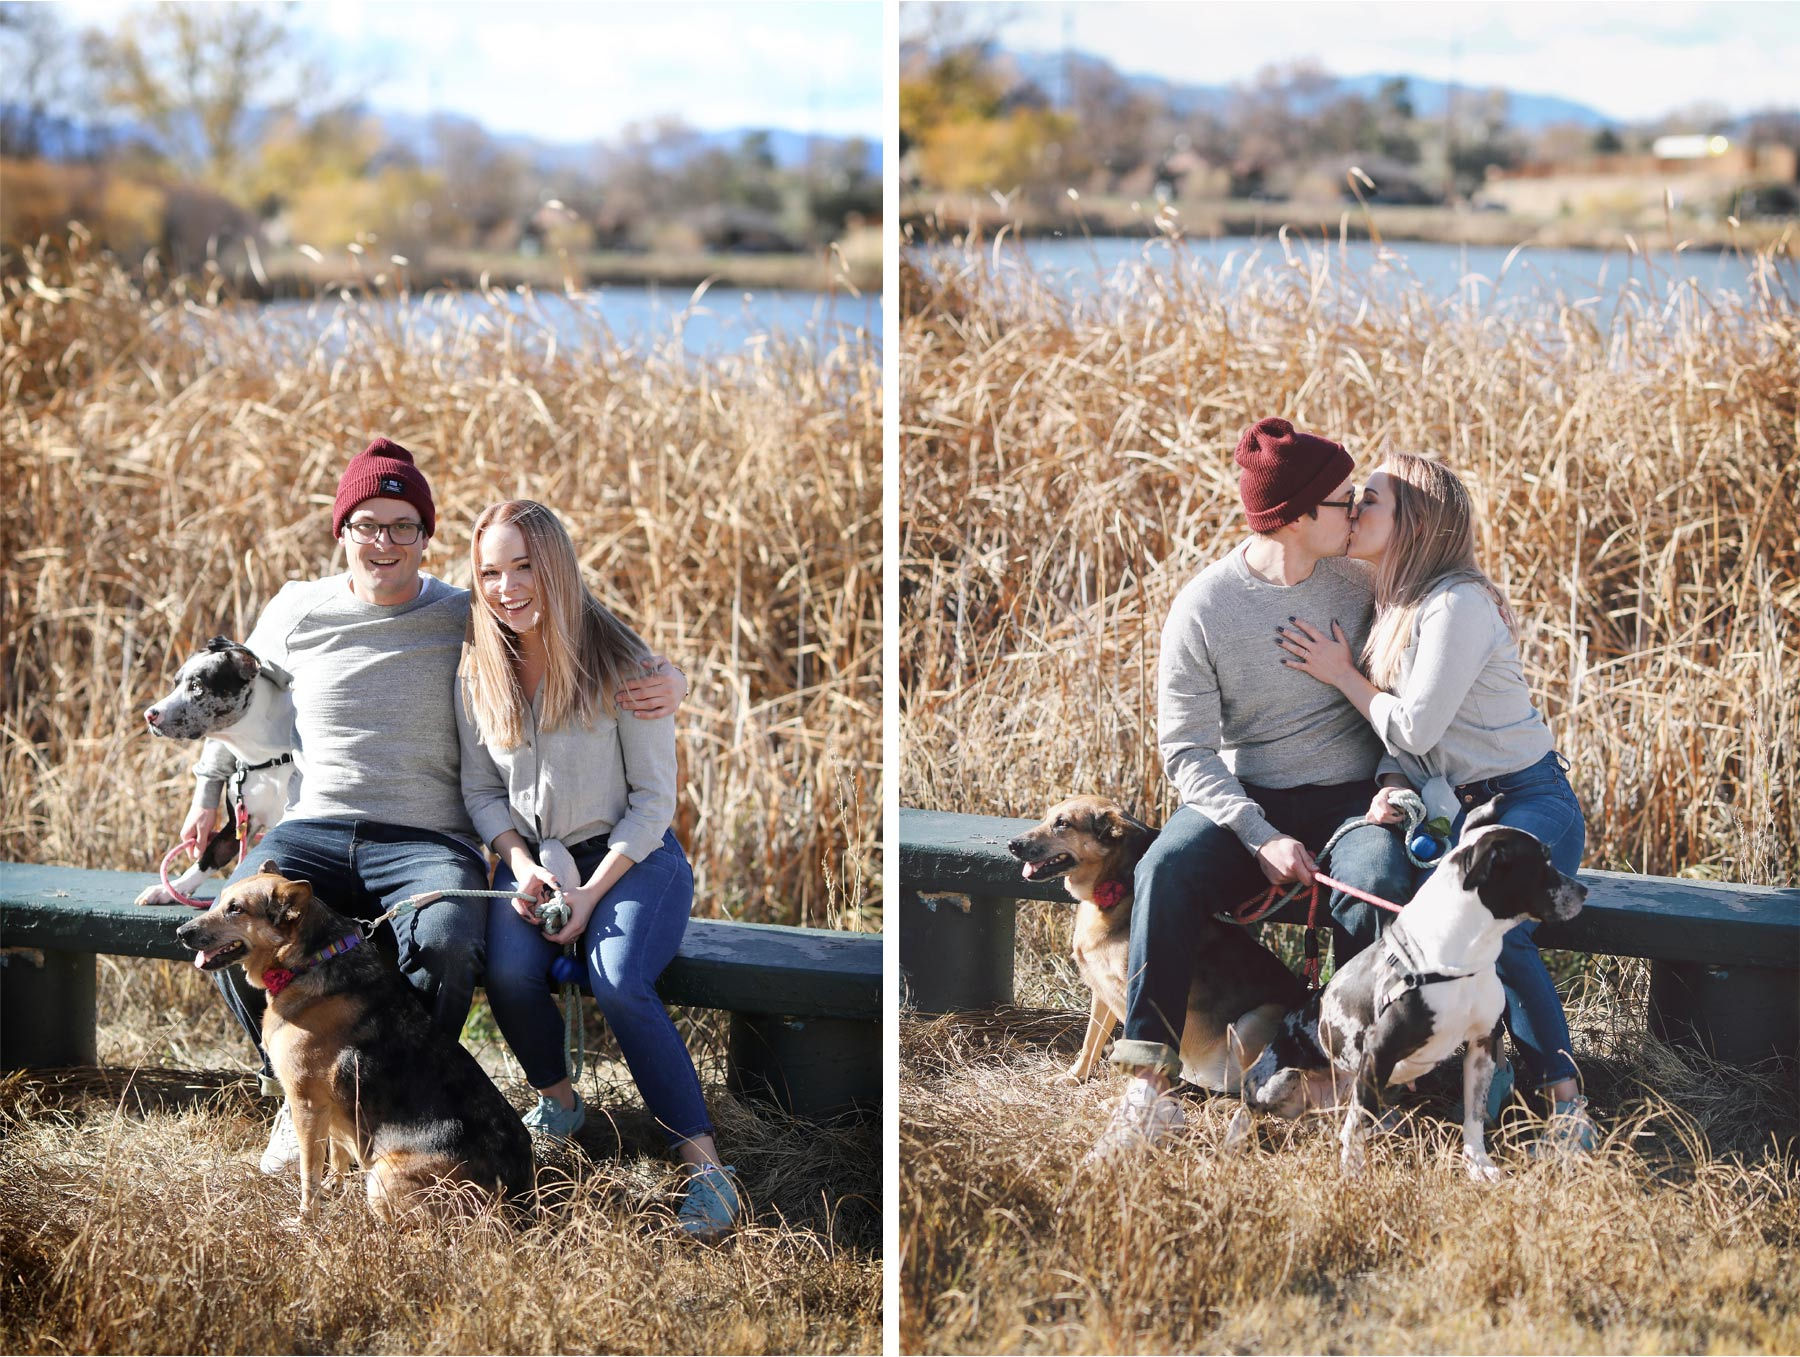 03-Vick-Photography-Fly-to-You-Engagement-Session-Denver-Colorado-Dog-Walk-Field-Danielle-and-Tom.jpg